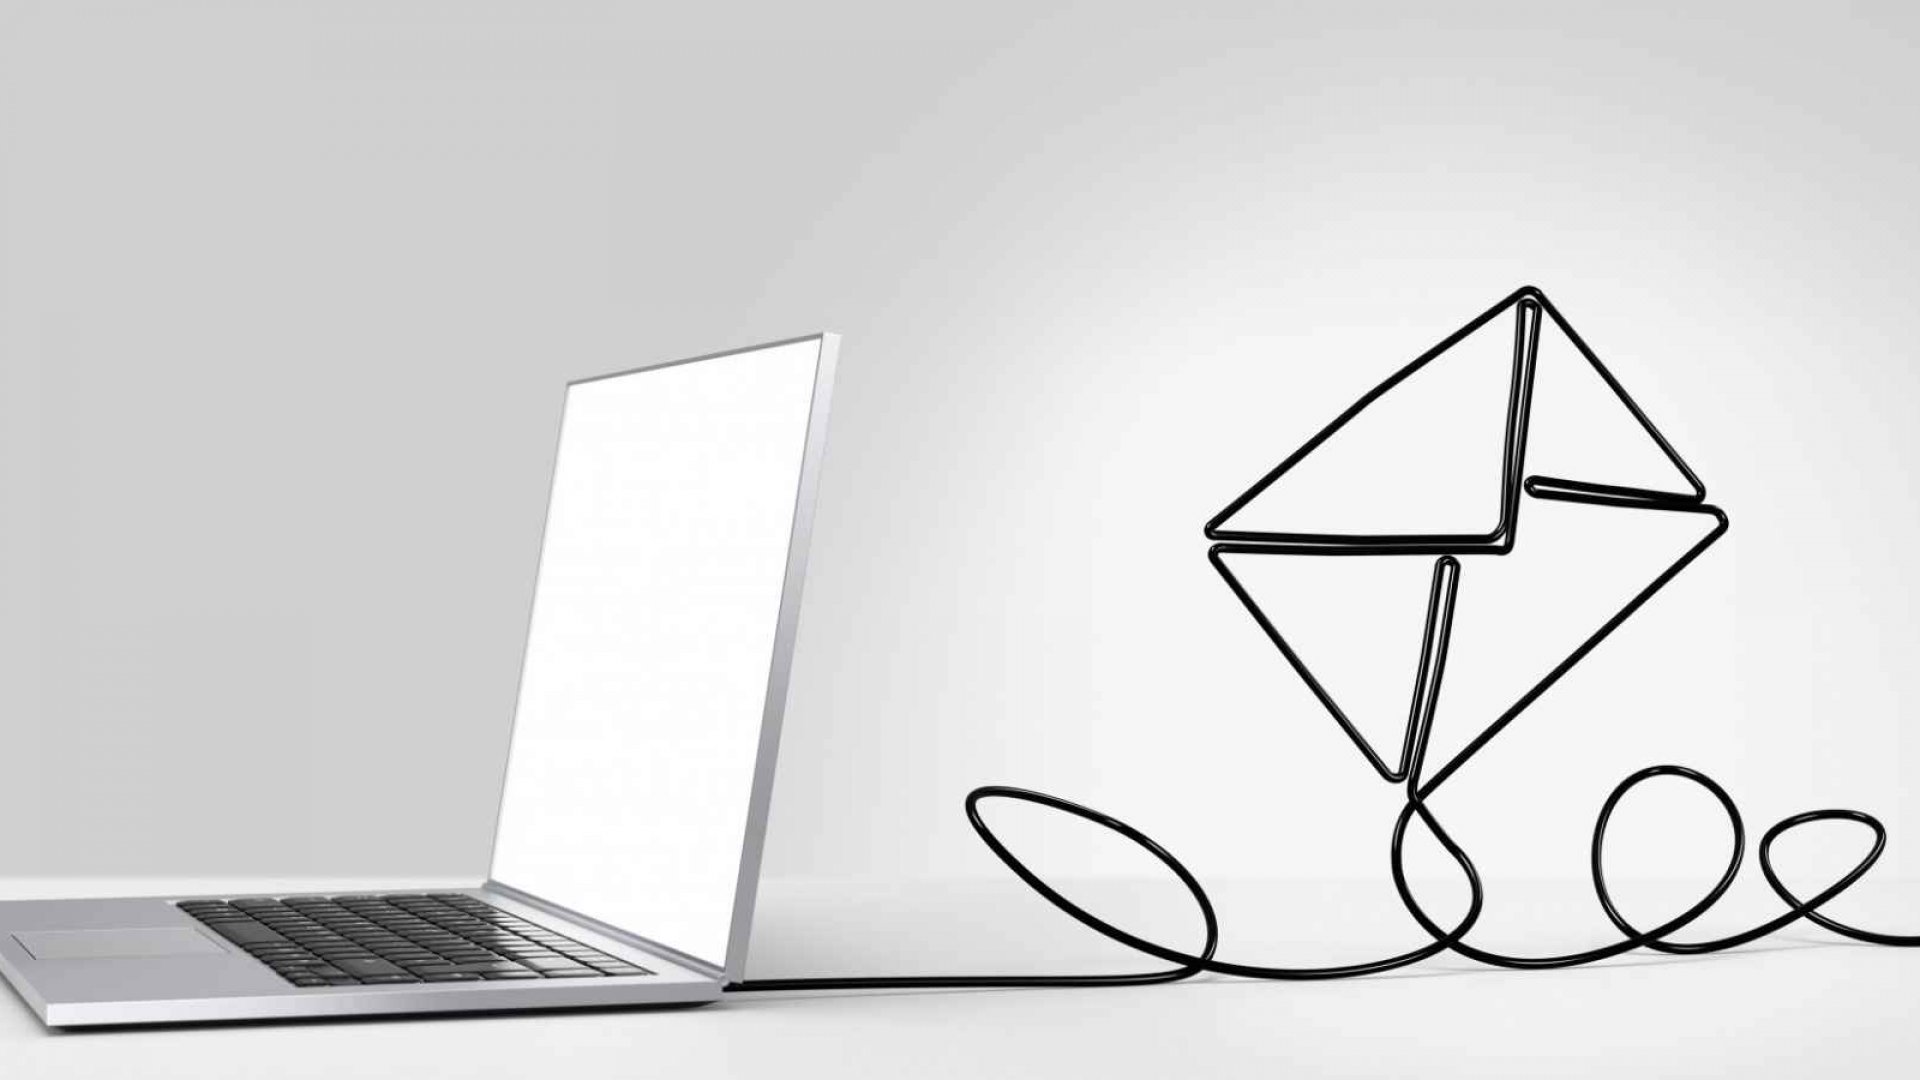 The Best Way to Get a Response to Your Emails